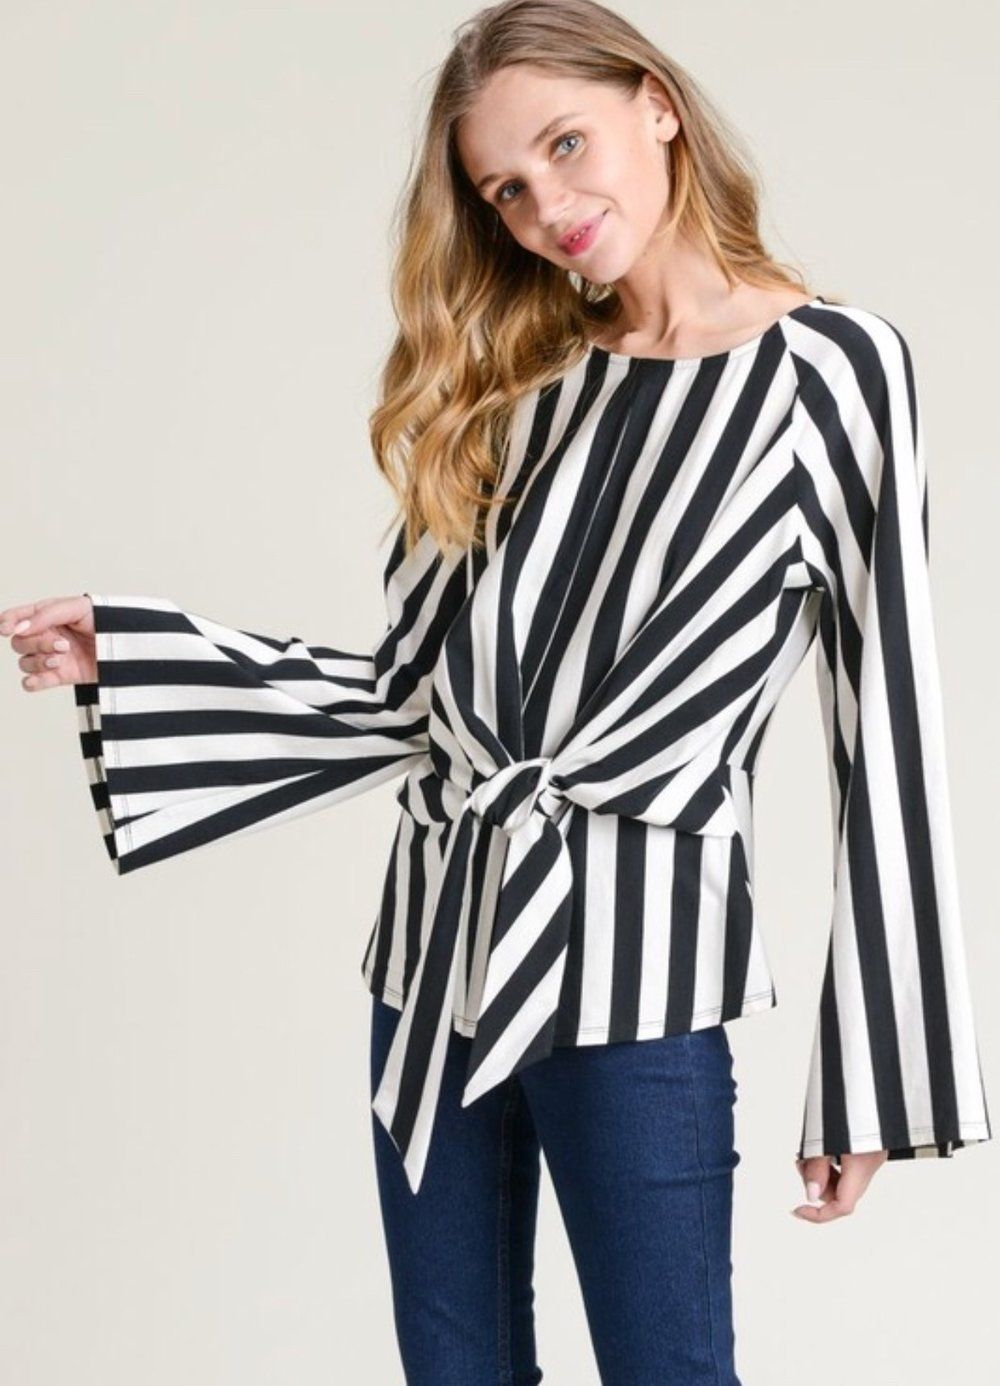 e1bf0375d8e034 Striped top with wide long sleeves and a torso wrap tie feature ...